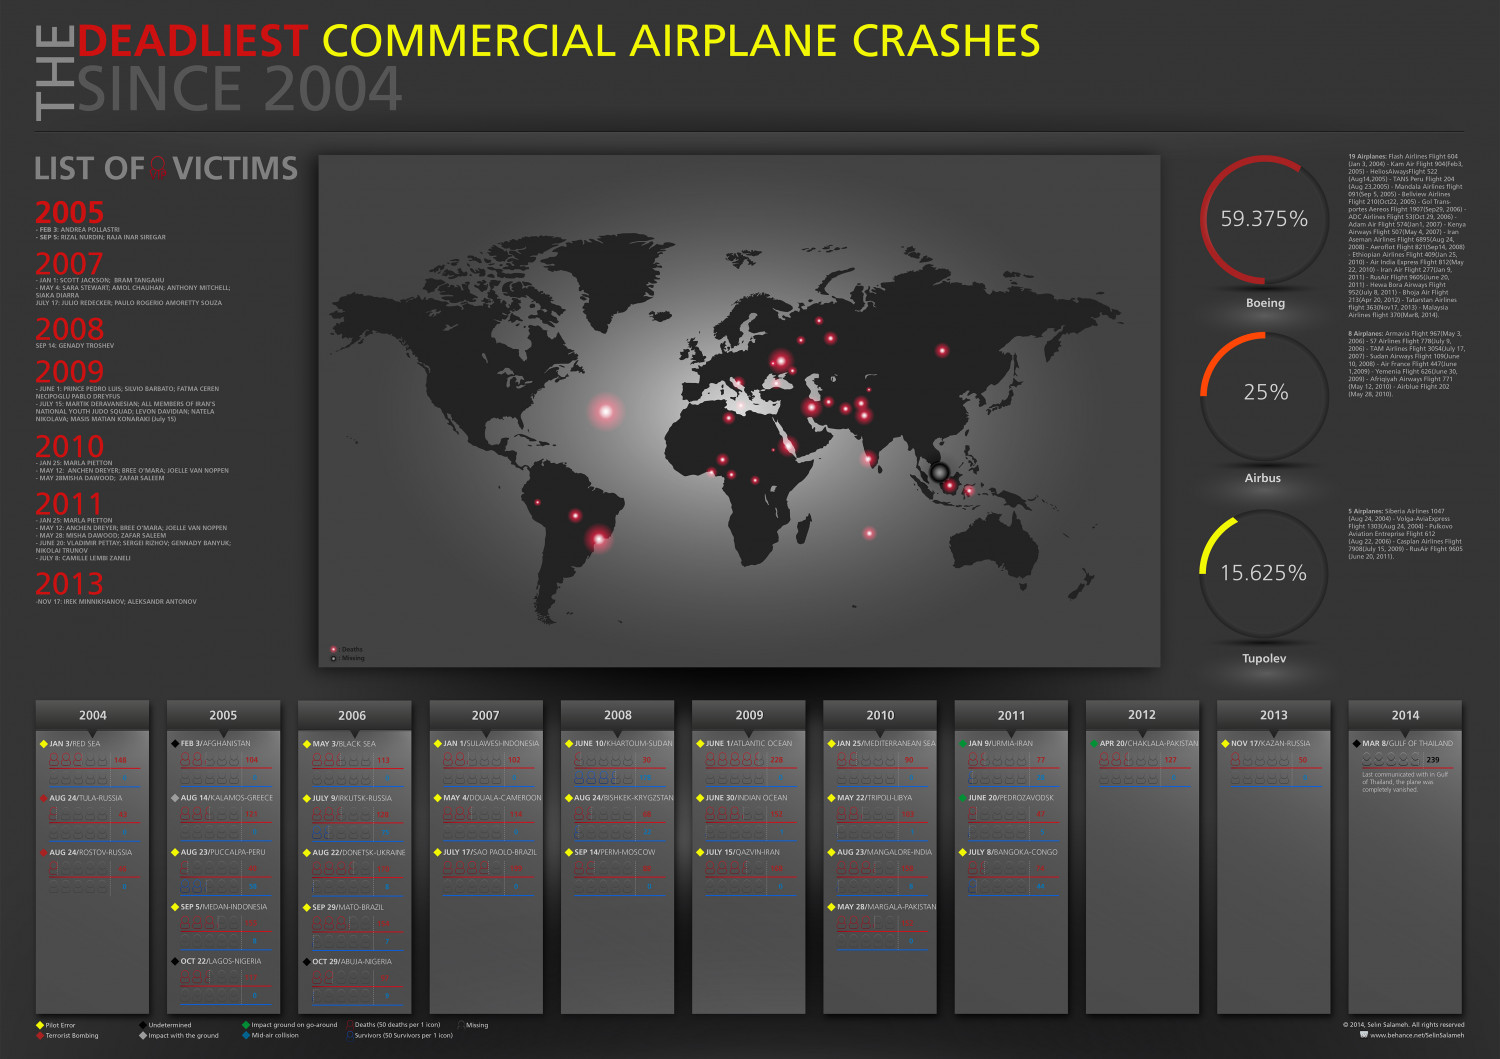 The Deadliest Commercial Airplane Crashes Since 2004 Infographic